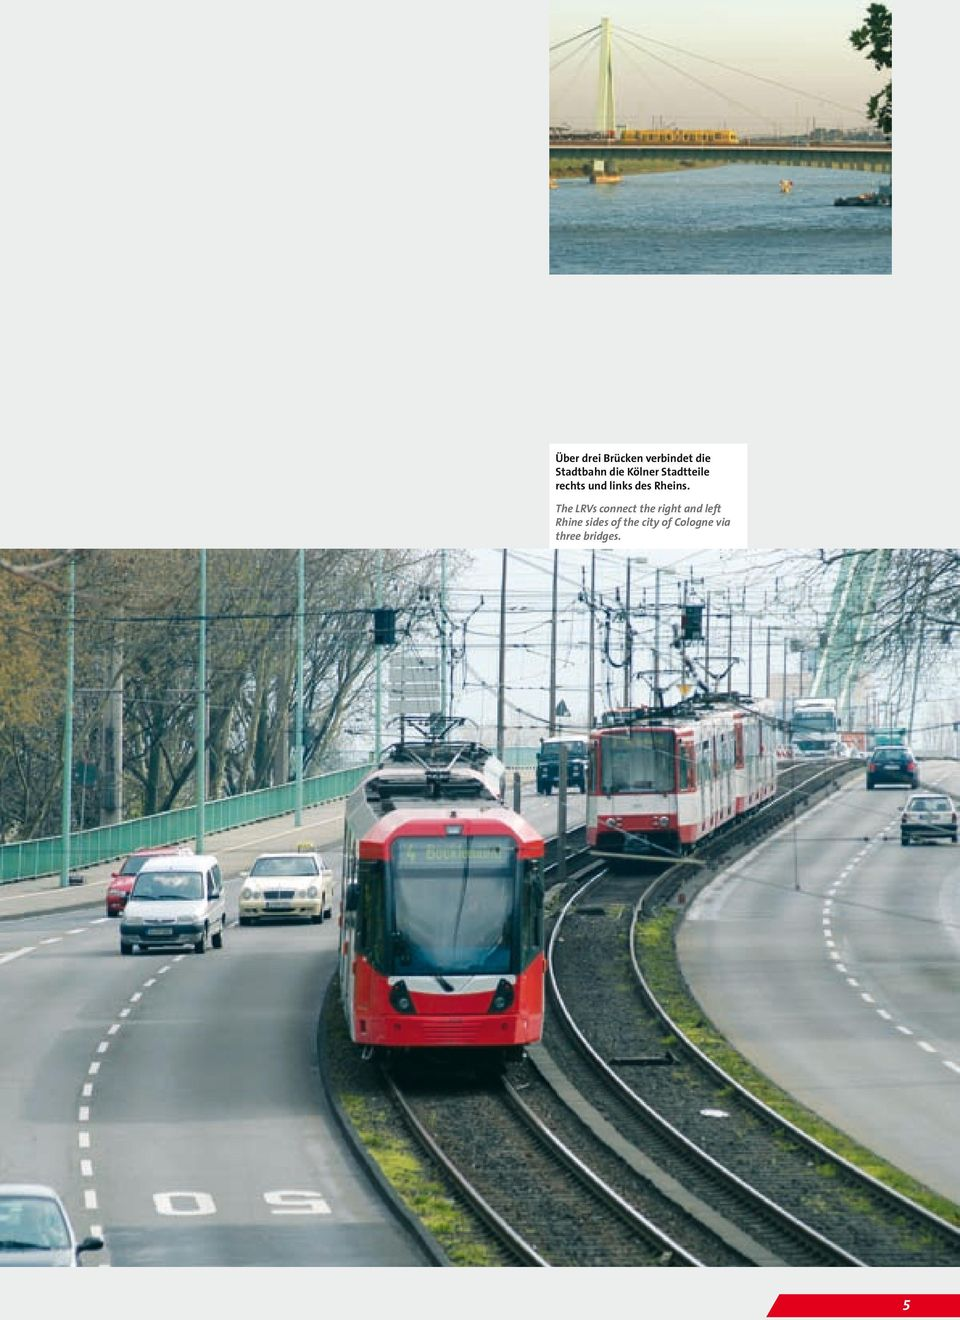 The LRVs connect the right and left Rhine